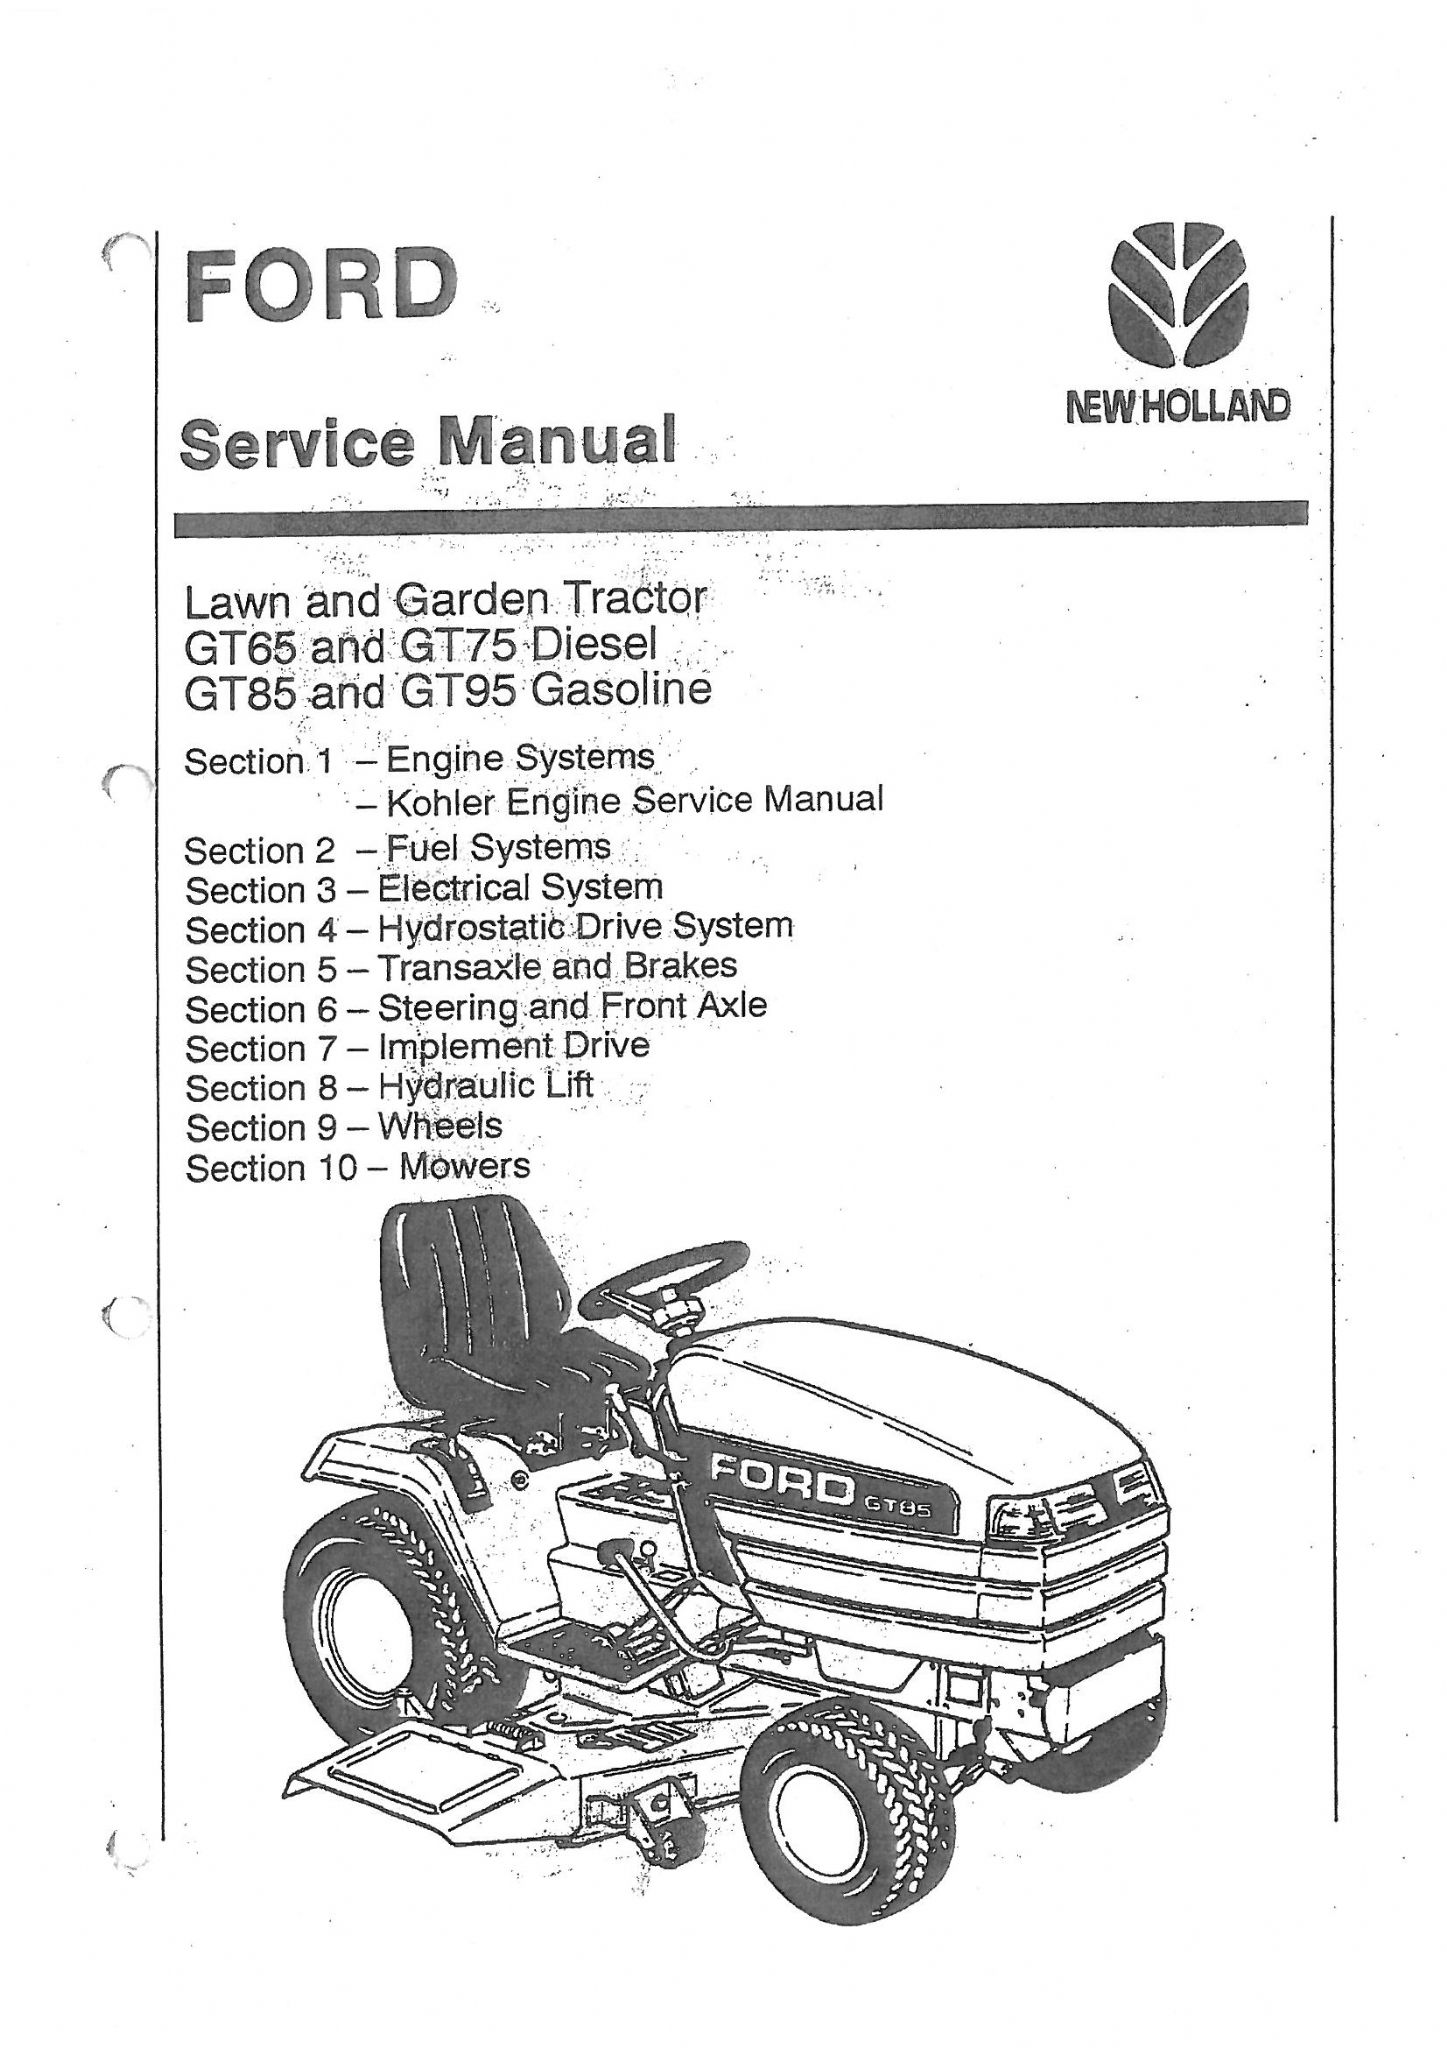 Ford Lawn Tractor | Wiring Diagram Database New Holland Boomer Wiring Diagrams on